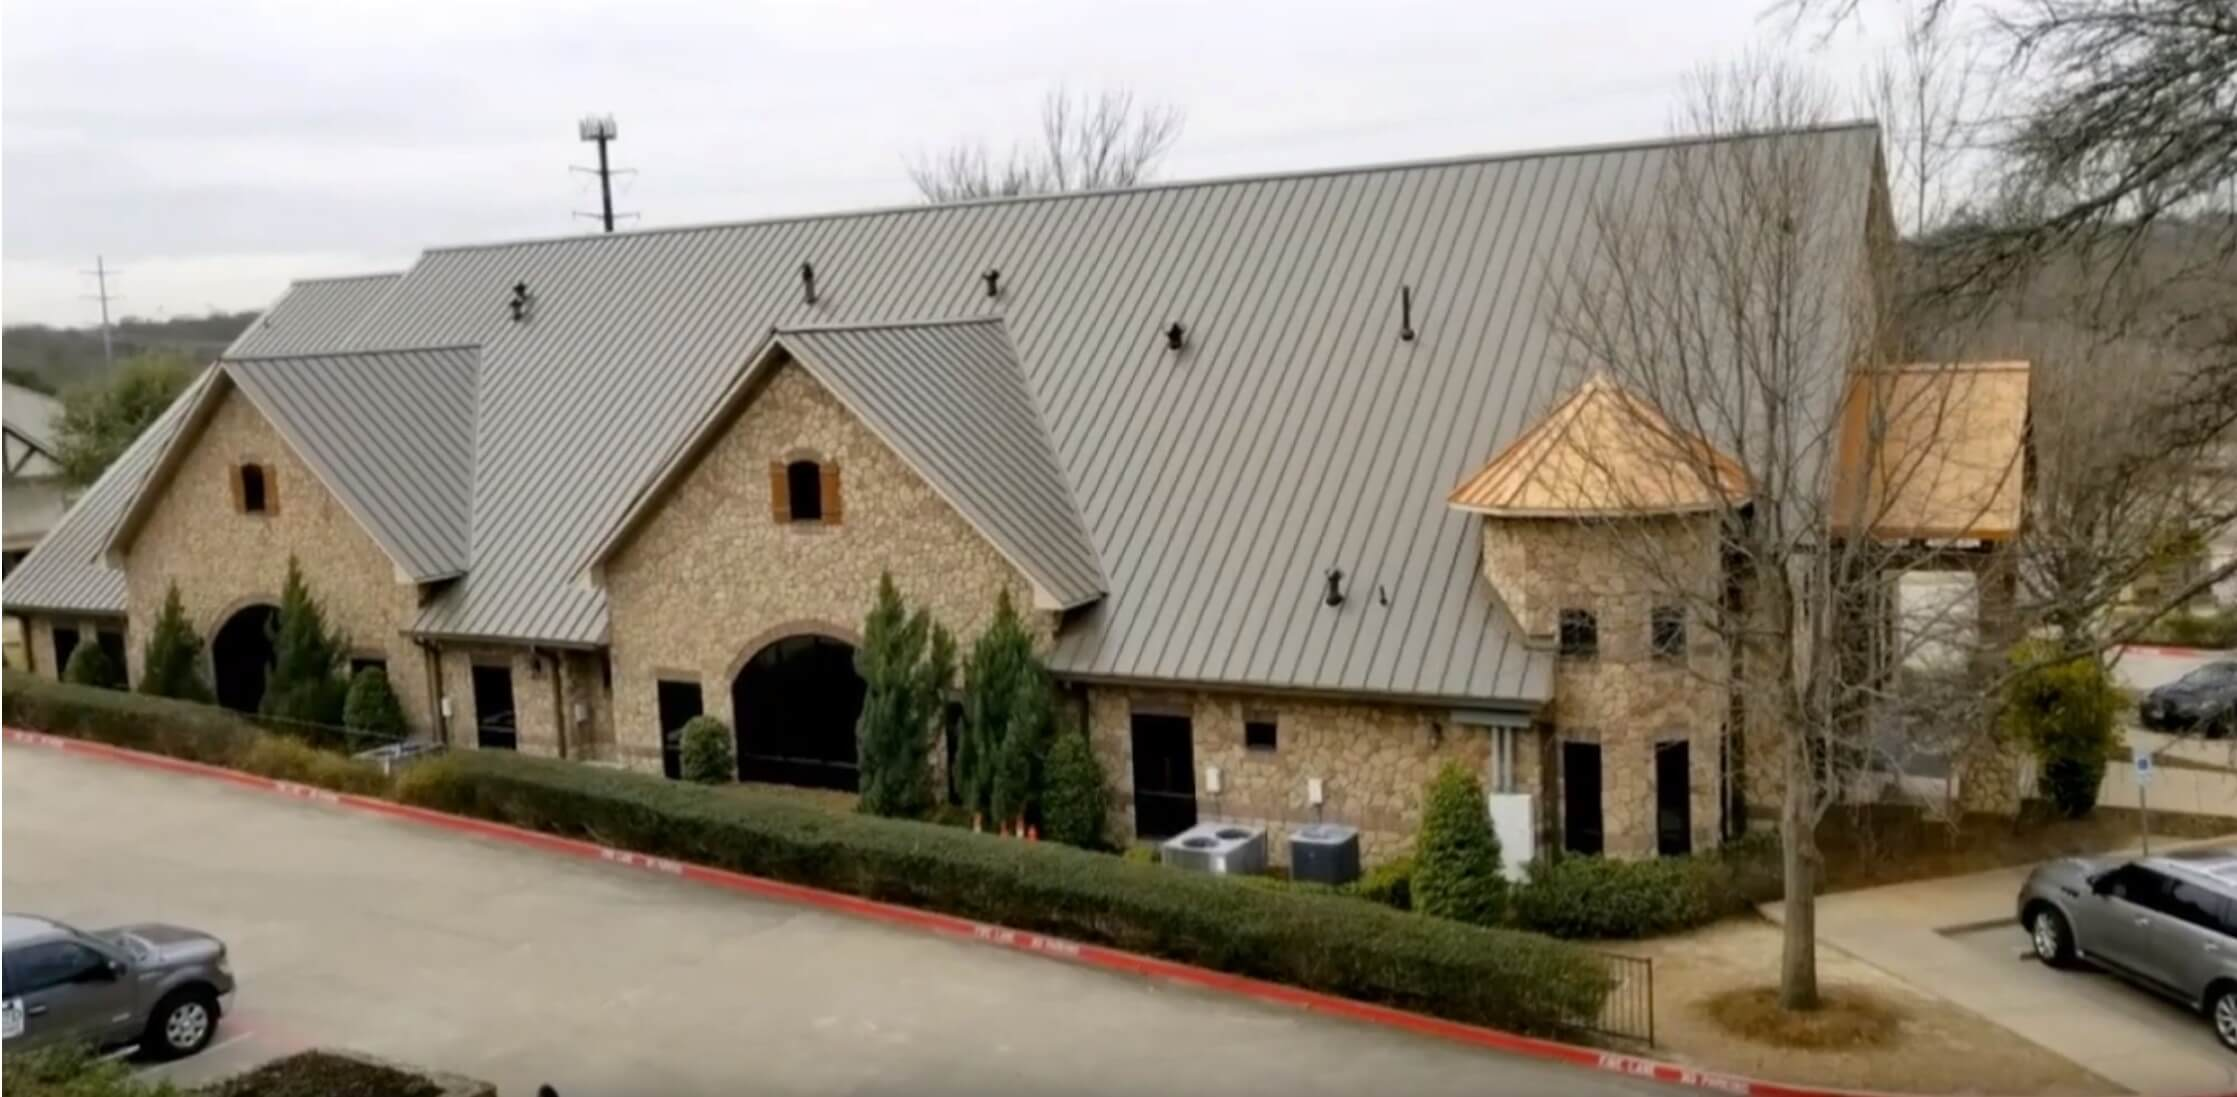 McKinney Commercial Roofing